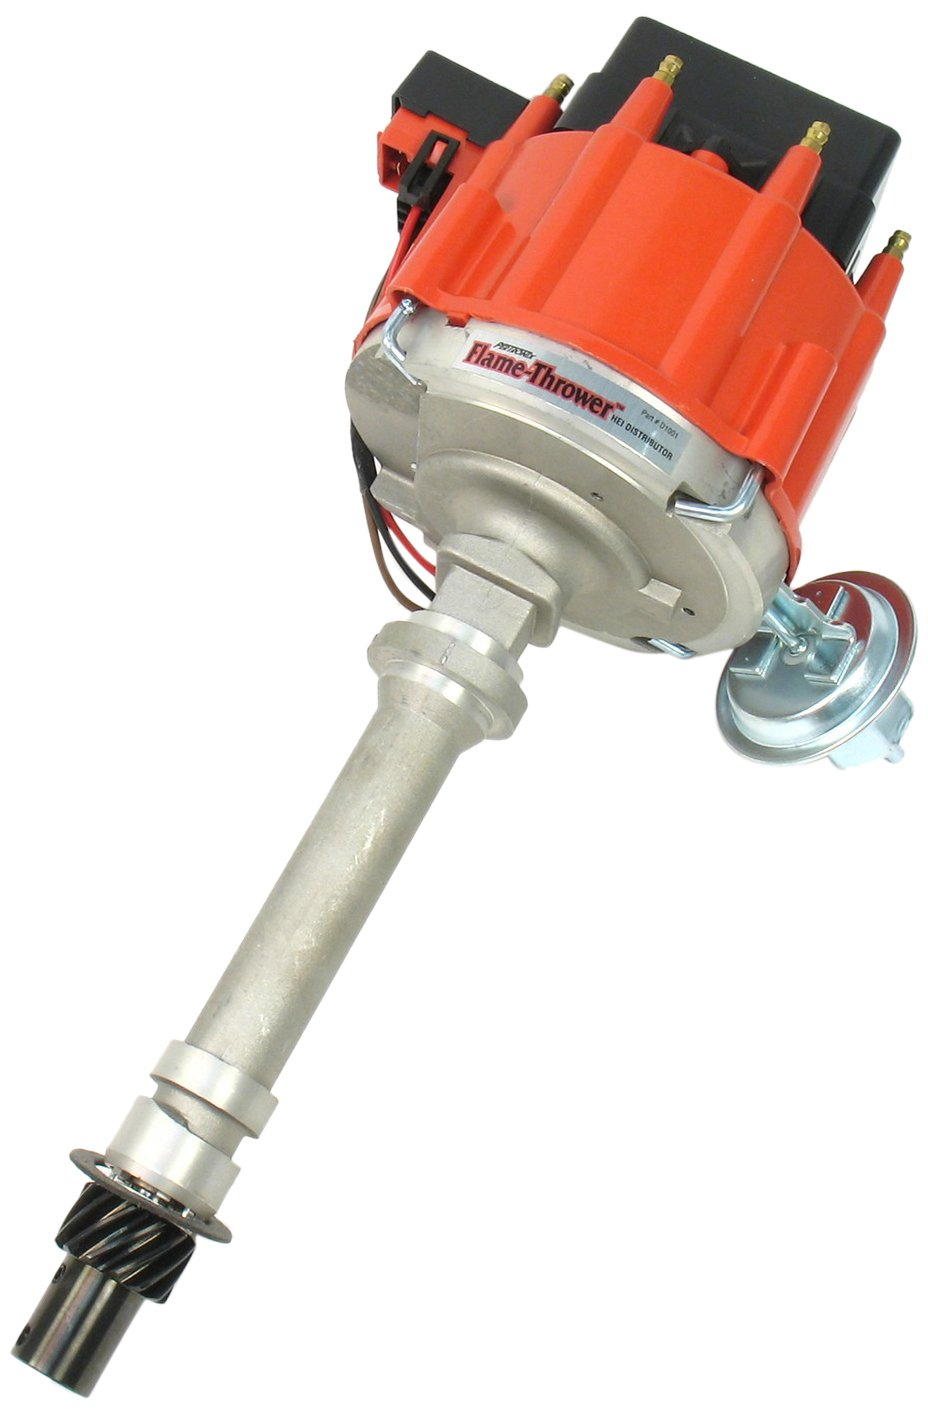 PerTronix D1001 Flame-Thrower Red Cap Distributor HEI for Chevrolet Small Block/Big Block